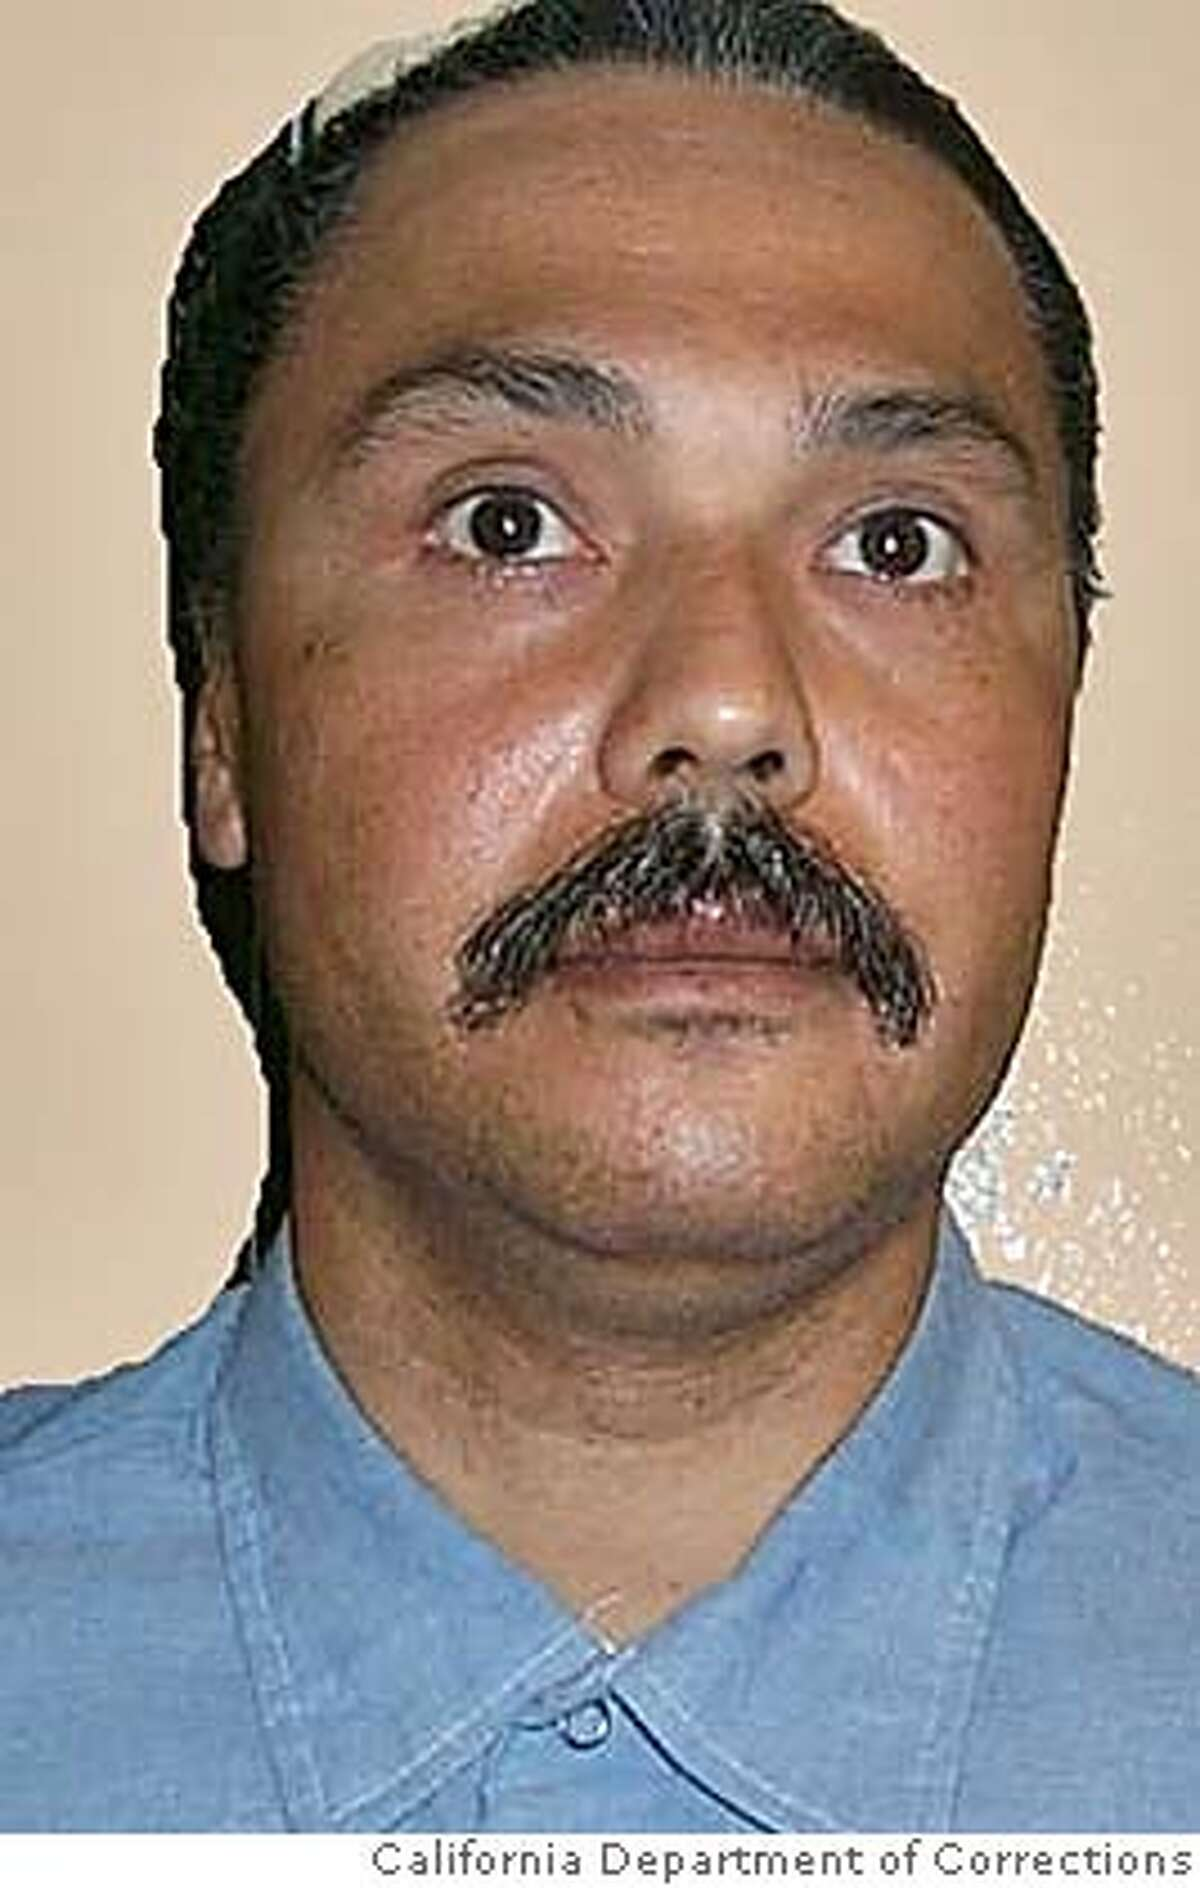 ** EDS: PHOTO HAS BEEN DIGITALLY ALTERED BY SOURCE TO REMOVE BACKGROUND ** In this photo released by the California Department of Corrections, Michael Morales, 46, of Stockton, Calif., is seen in an undated photo. Morales was convicted in 1983 of murdering 17-year-old Terri Winchell, who was found beaten and stabbed in a secluded vineyard. Lawyers for Morales who is scheduled to be lethally injected Tuesday, Feb. 21, 2006, are objecting to a court-ordered plan to alter the procedure, saying Thursday the revision reduces the condemned man